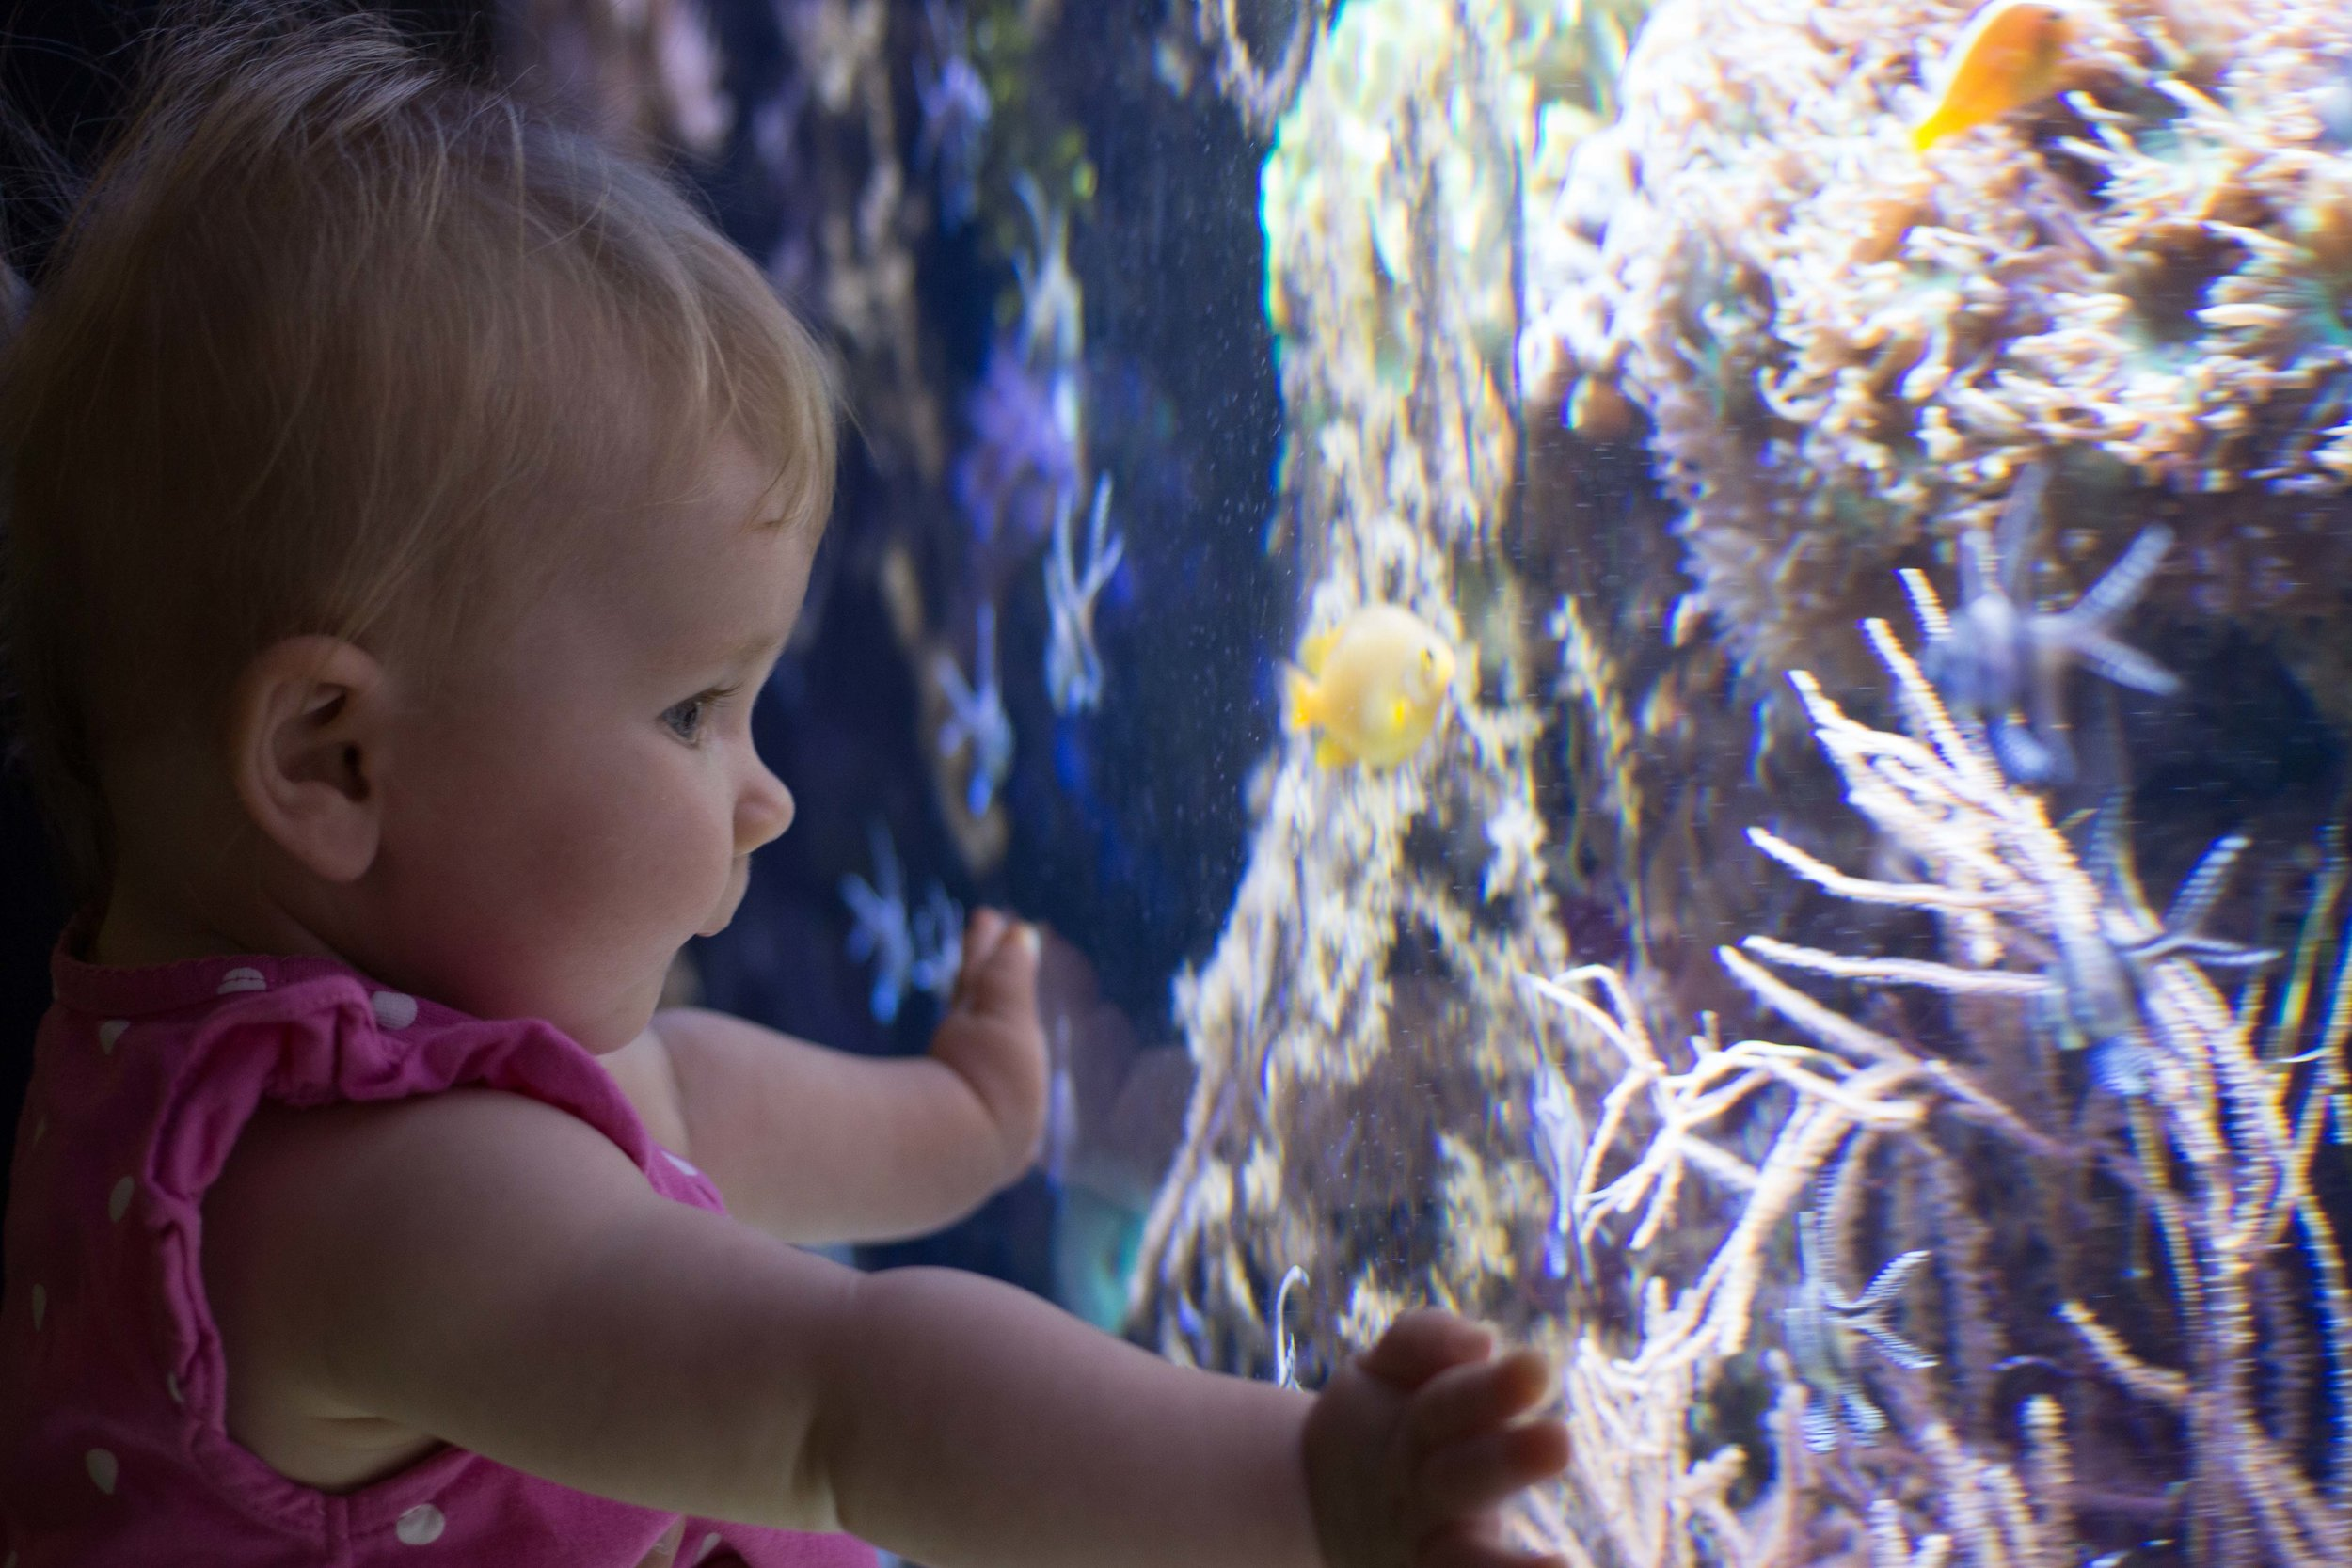 One of my favorite pictures! Look how intently she's watching the little fish! I think we have a future scuba diver on our hands :)